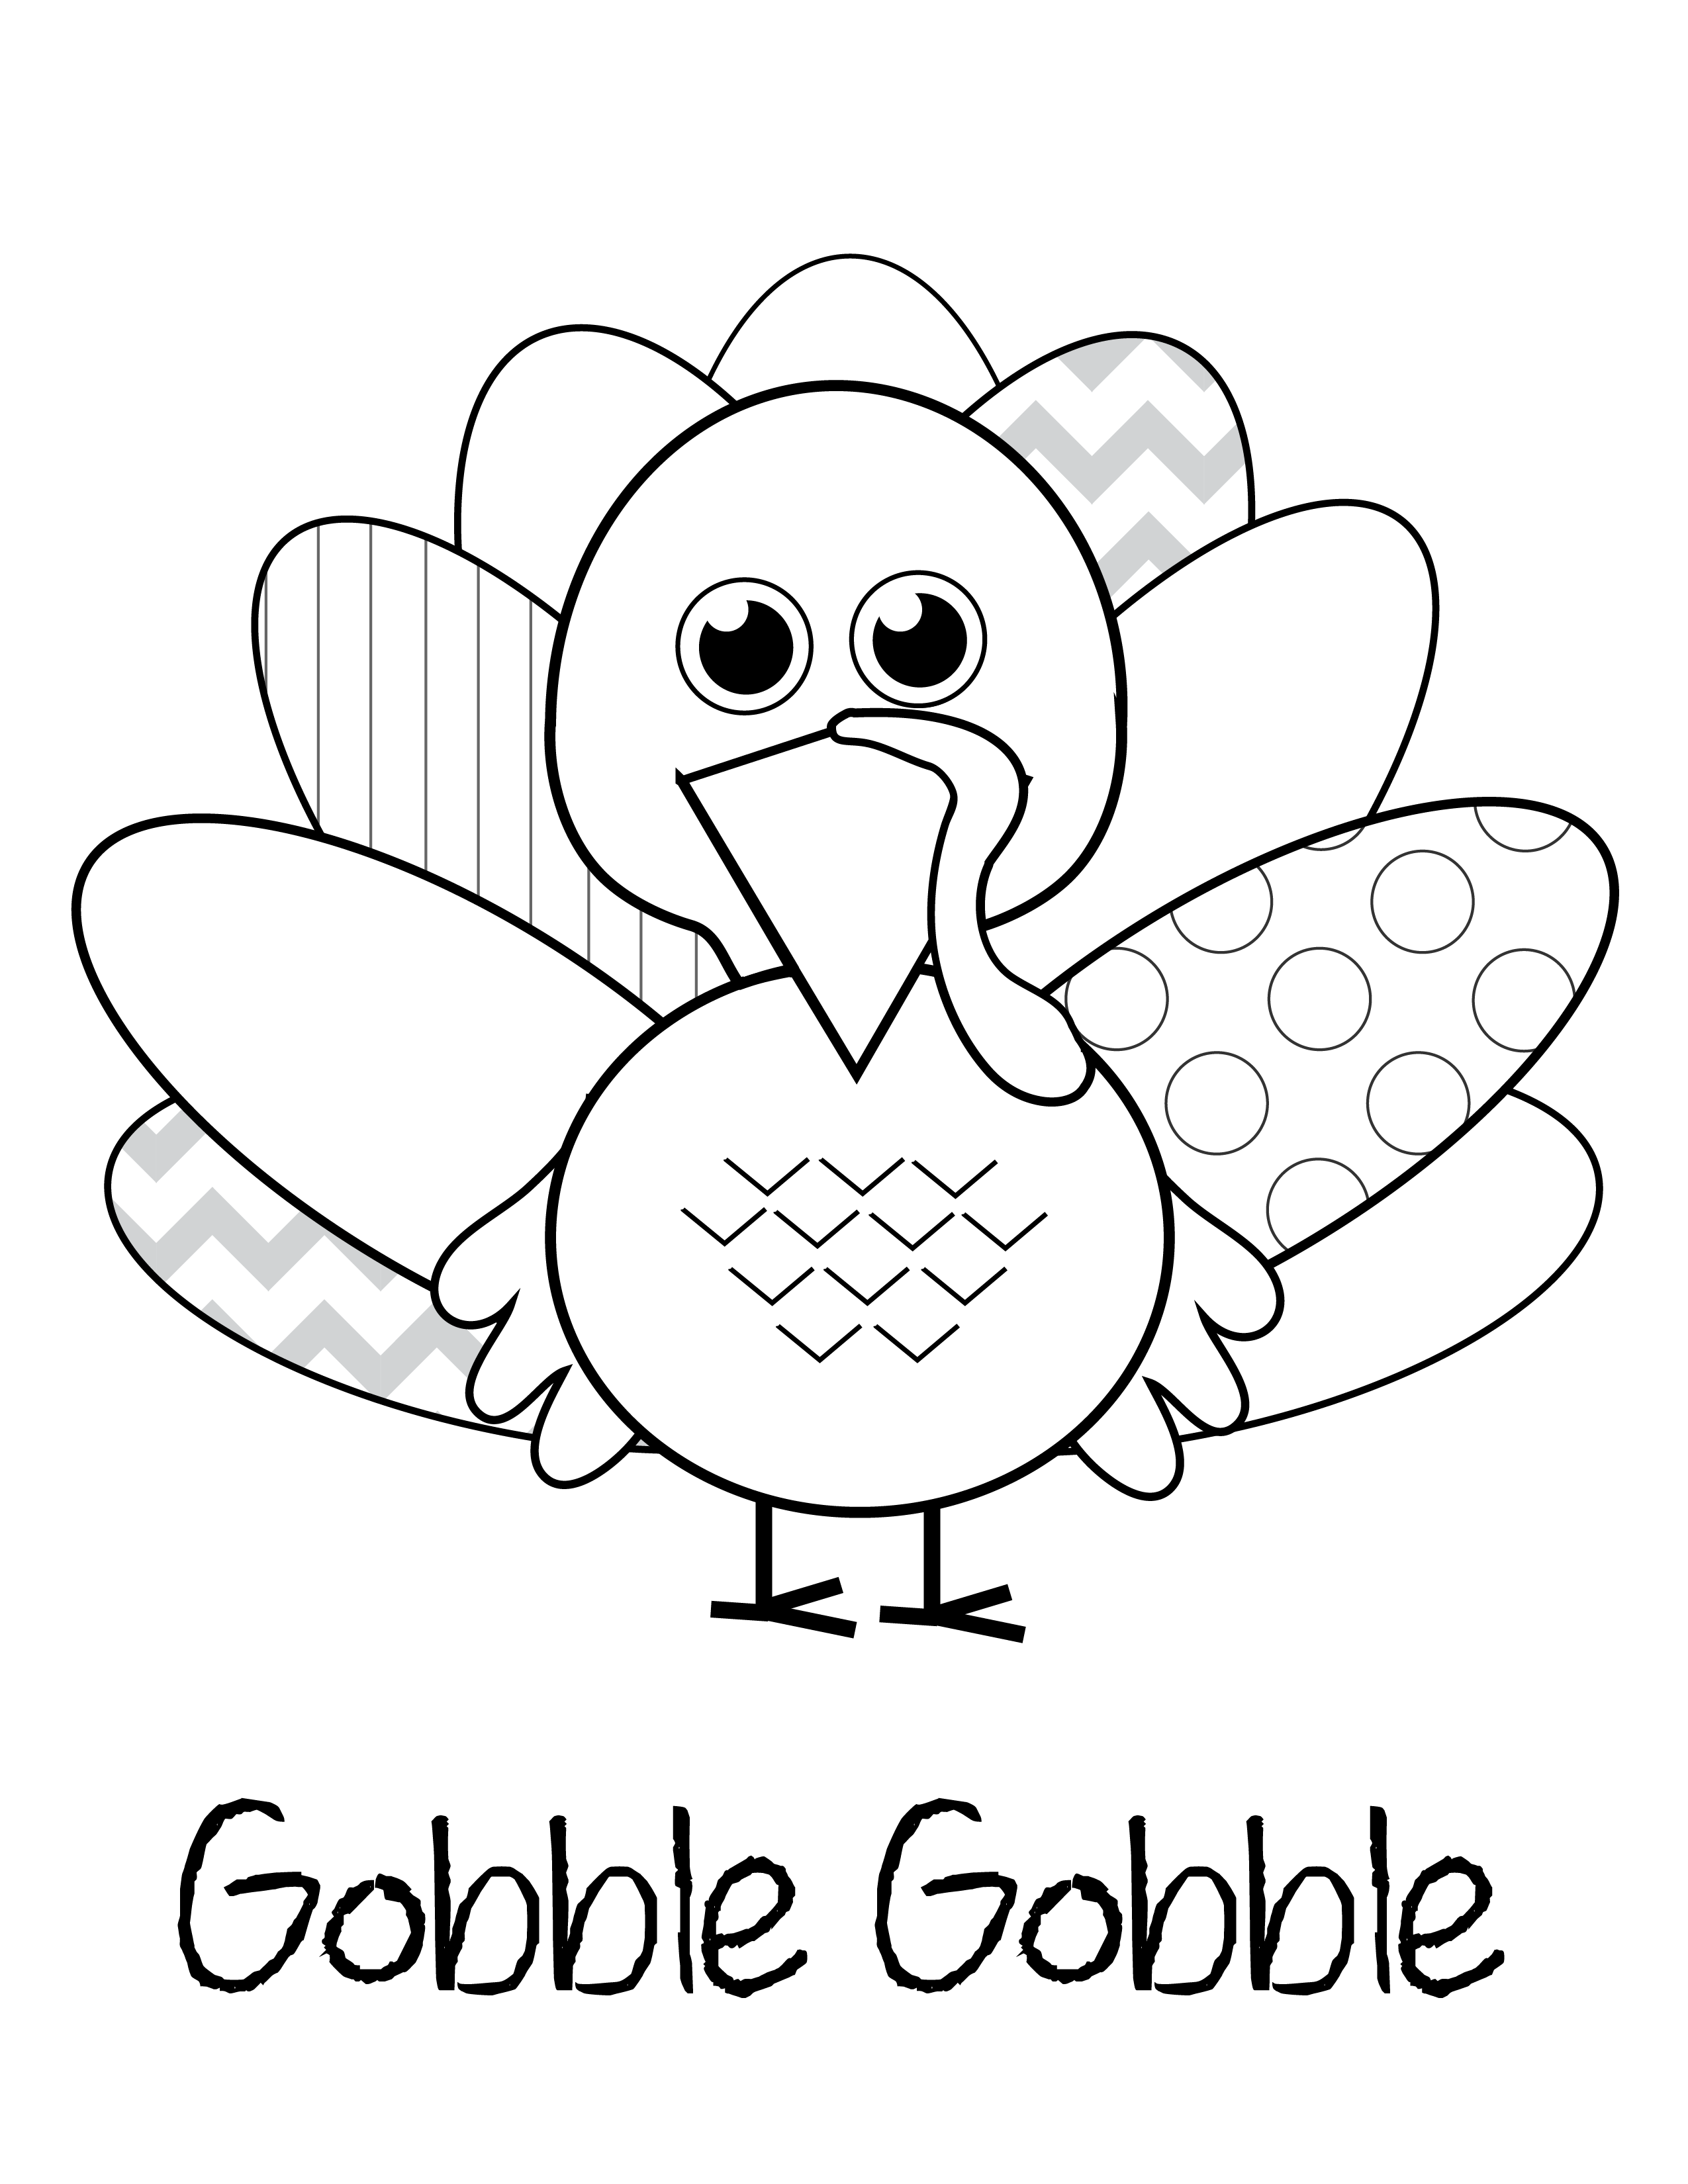 printable thanksgiving coloring book thanksgiving coloring book free printable for the kids thanksgiving book printable coloring